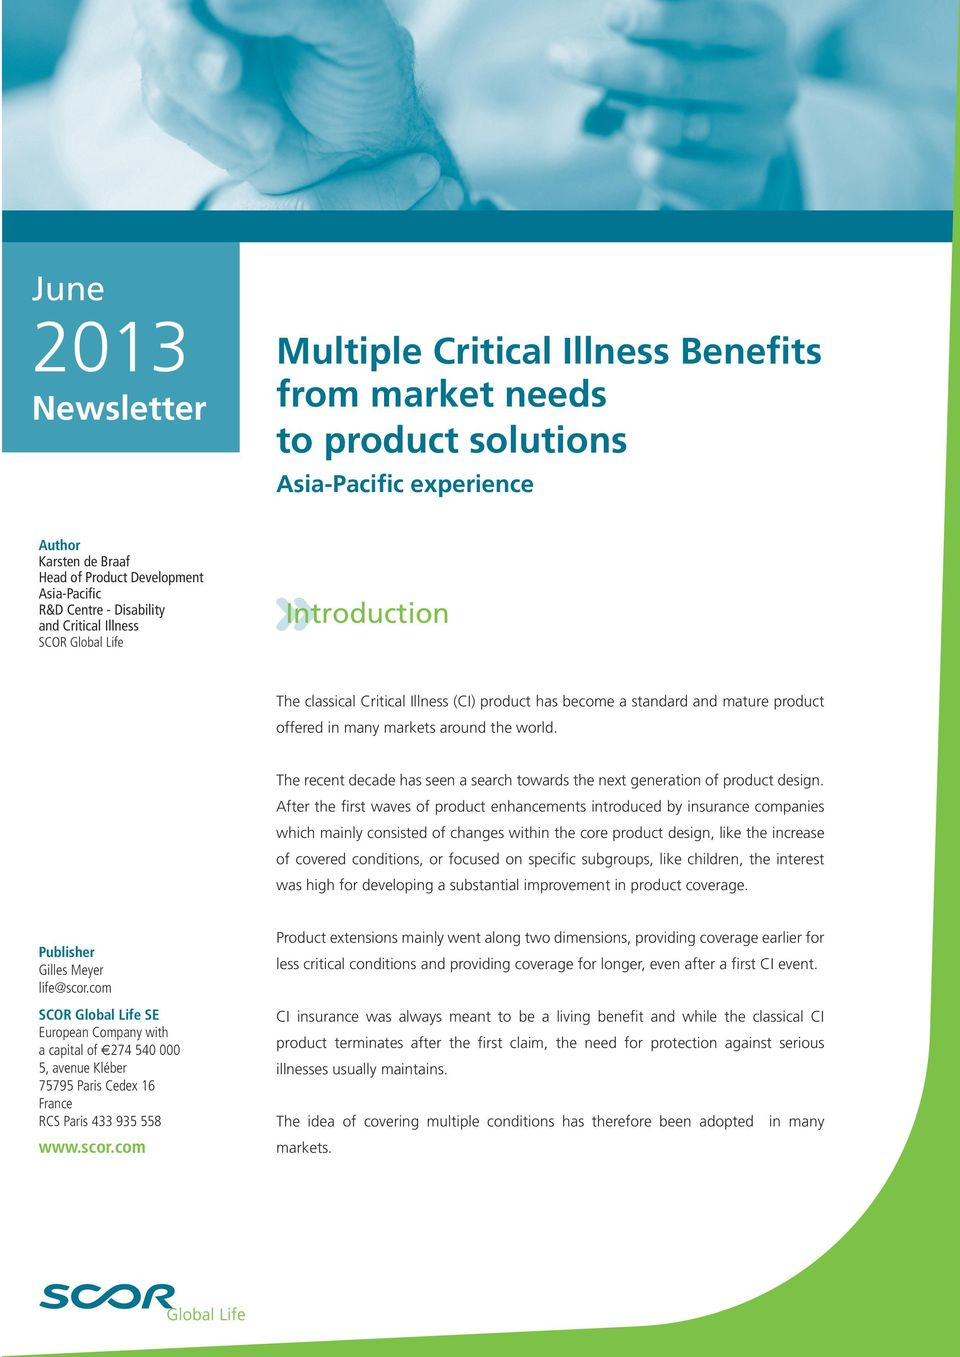 Multiple Critical Illness Benefits from market needs to product